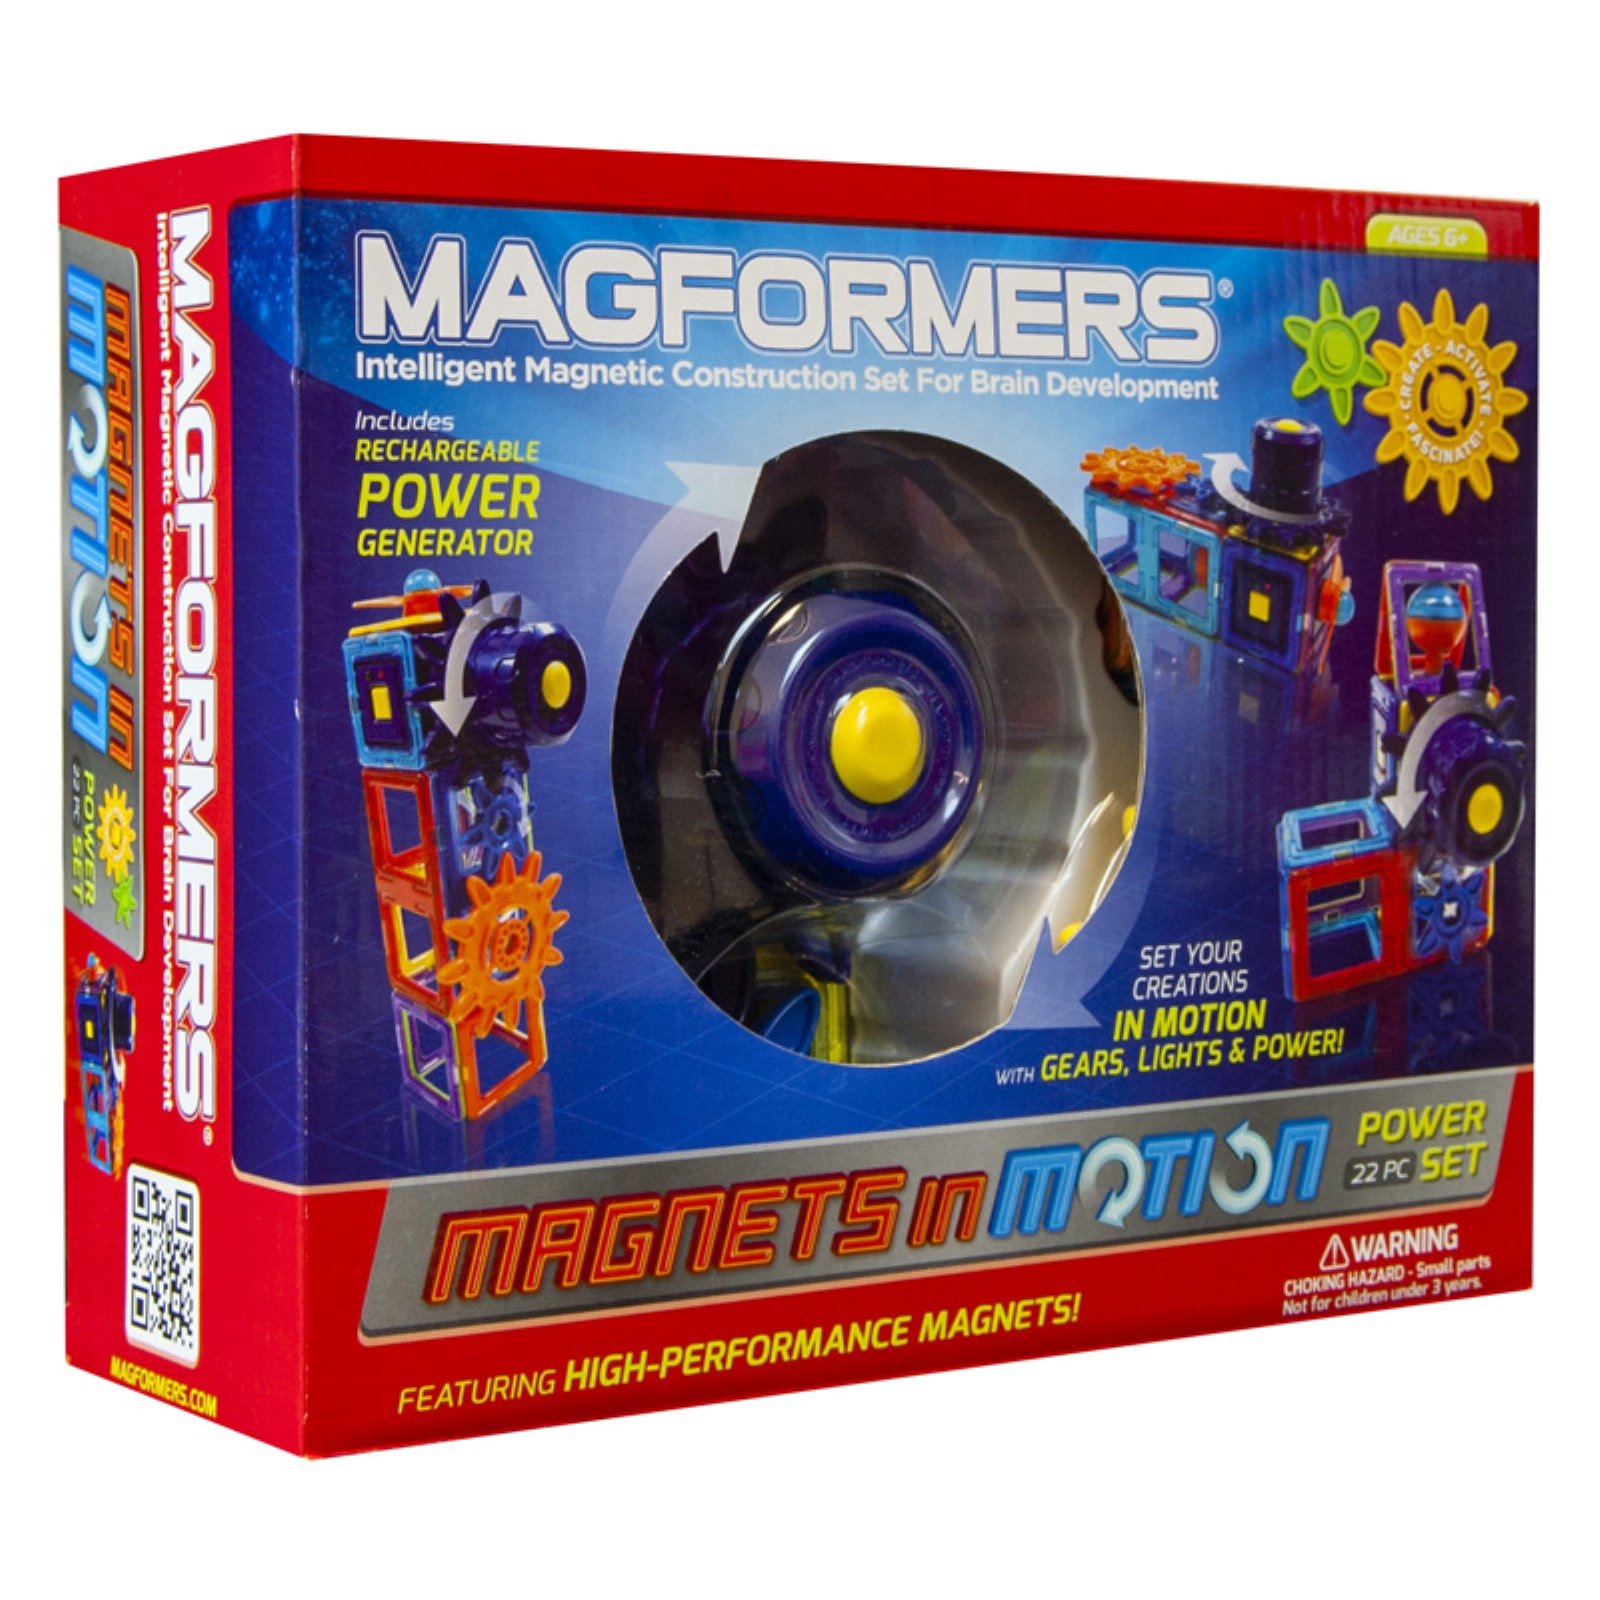 Magformers Magnets in Motion 22 Piece Magnetic Construction Set by Magformers